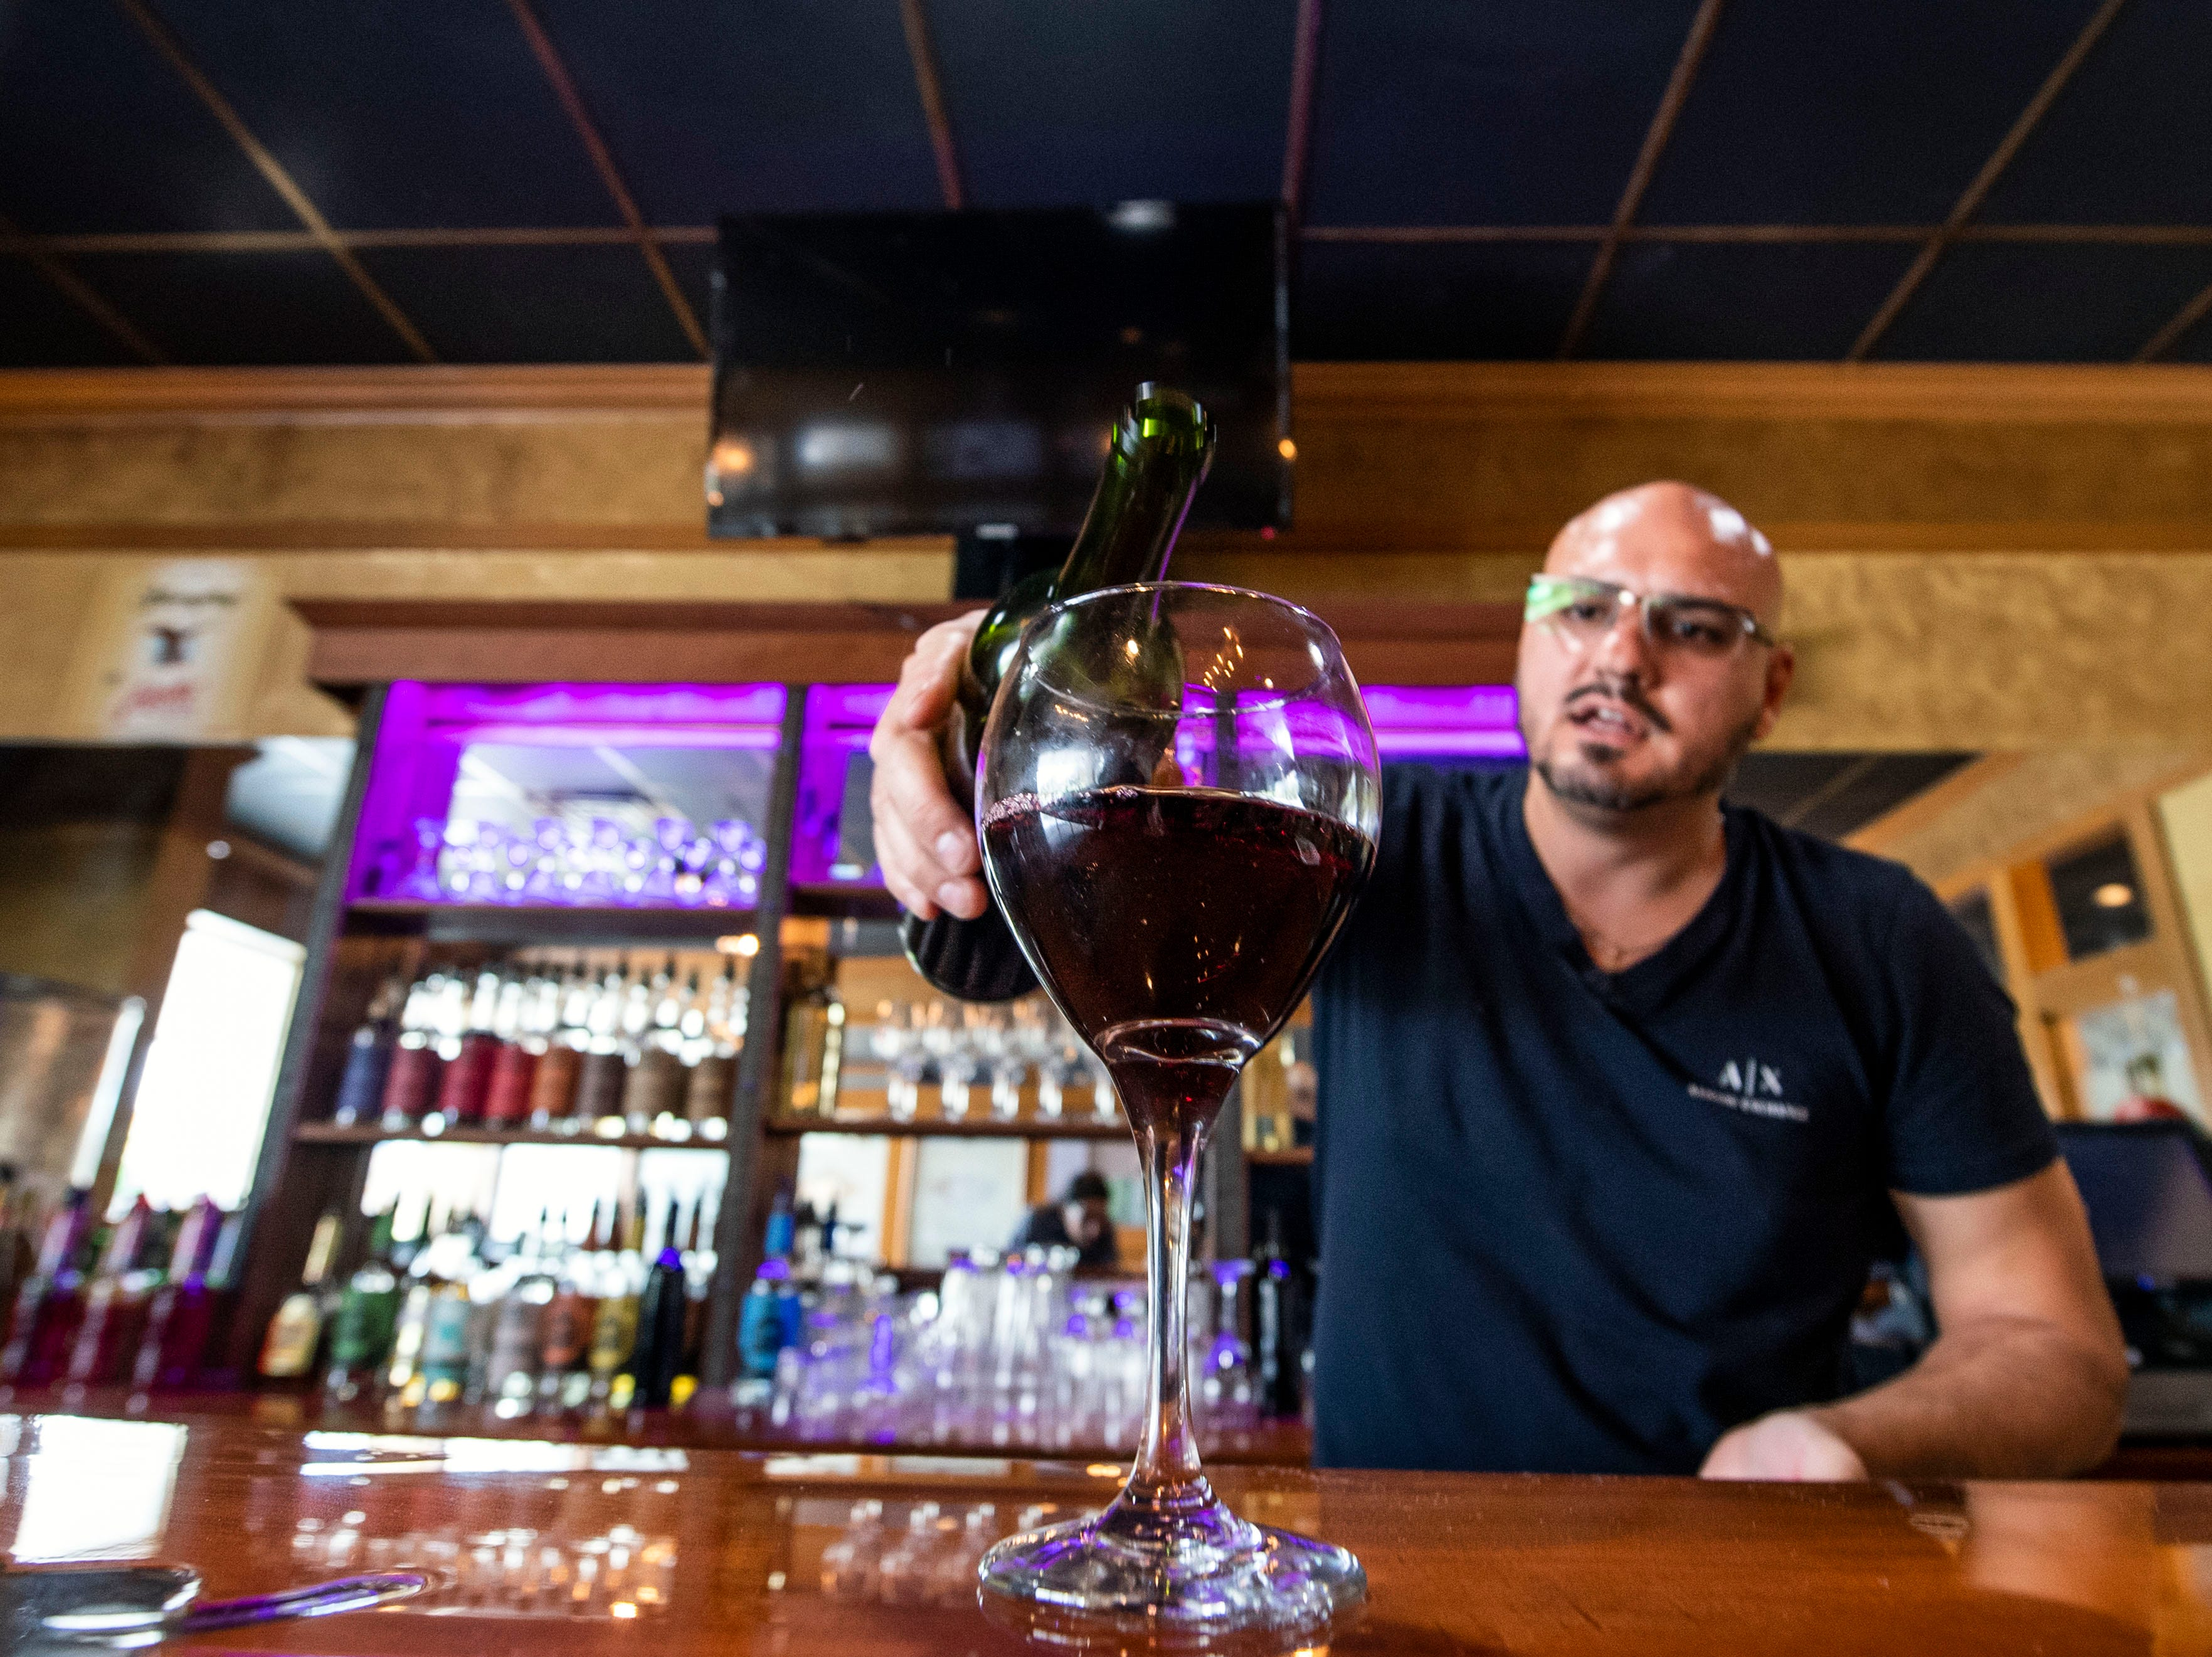 Vito Serradella pours a glass of Wood Fire Italian Grill's in-house wine, Wednesday, Oct. 10, 2018. The restaurant, which opened at the beginning of this year, has added on a bar, where they make their own wine to serve.